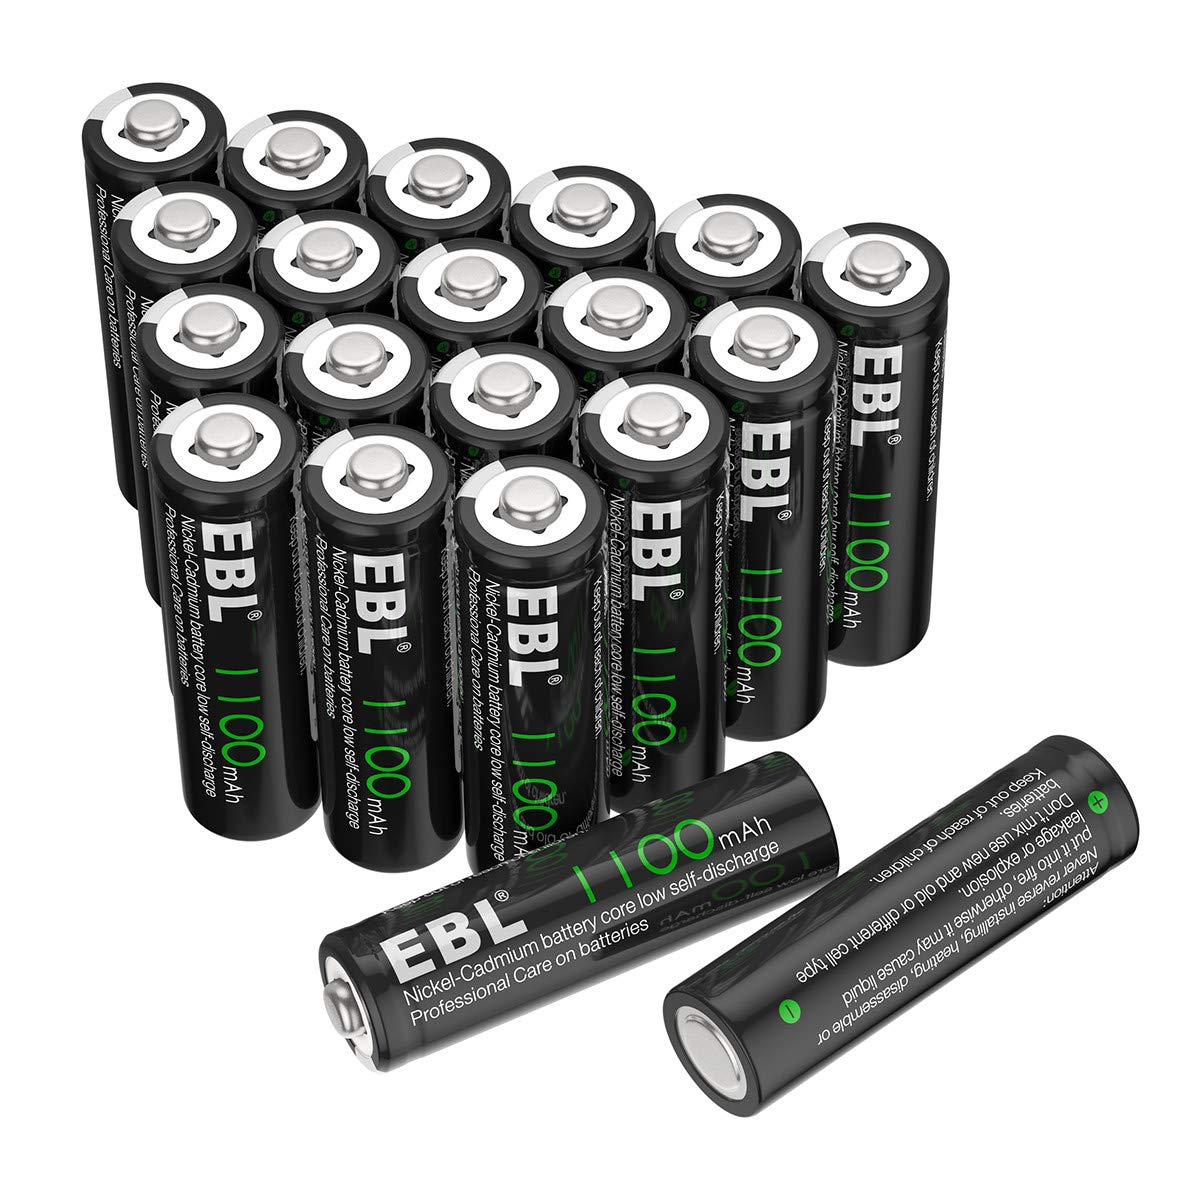 EBL AA Rechargeable Batteries for Solar Lights Replacement, 1100mAh High Capacity Ni-CD Battery (Pack of 20) by EBL